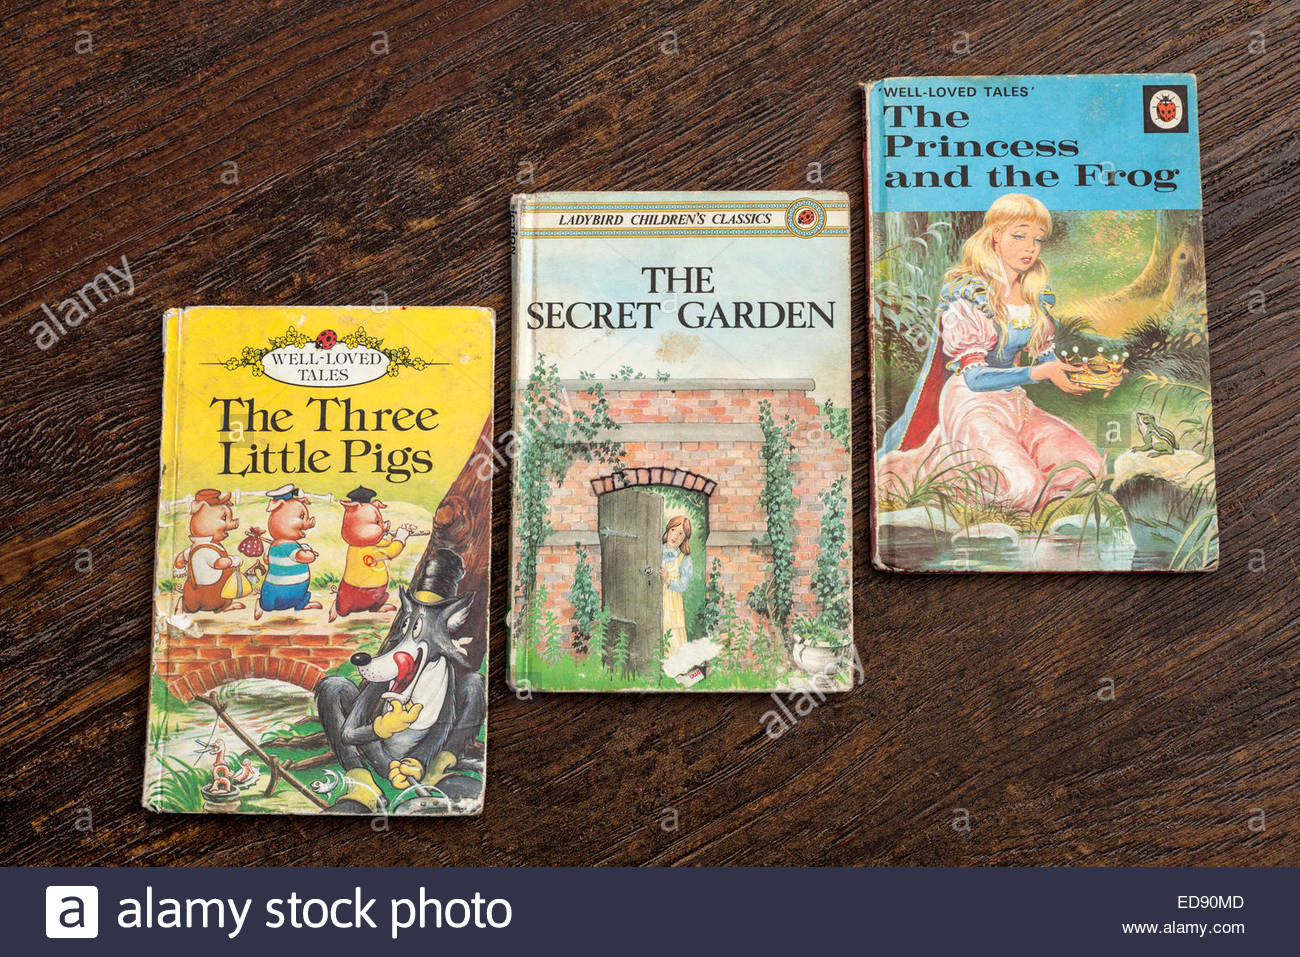 Princess lillifee coloring pages - Ladybird Books The Three Little Pigs The Secret Garden The Princess And The